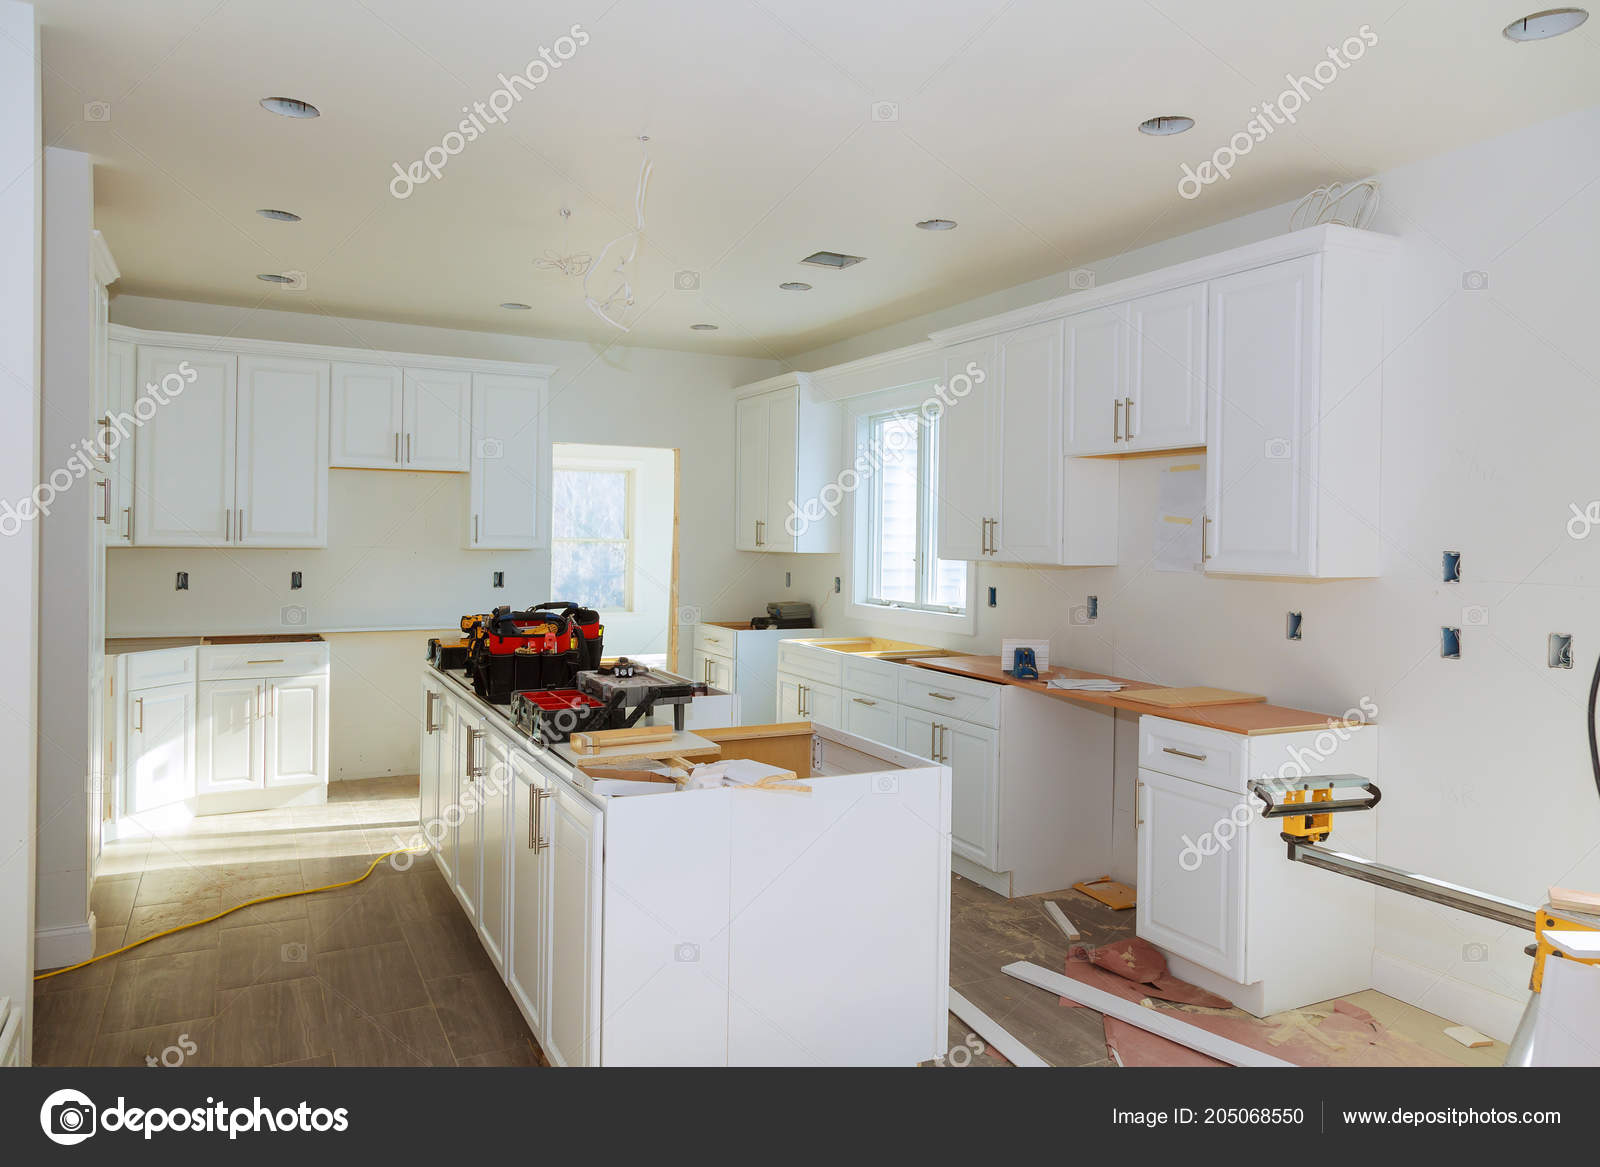 Installing New Induction Hob Modern Kitchen Home Improvement